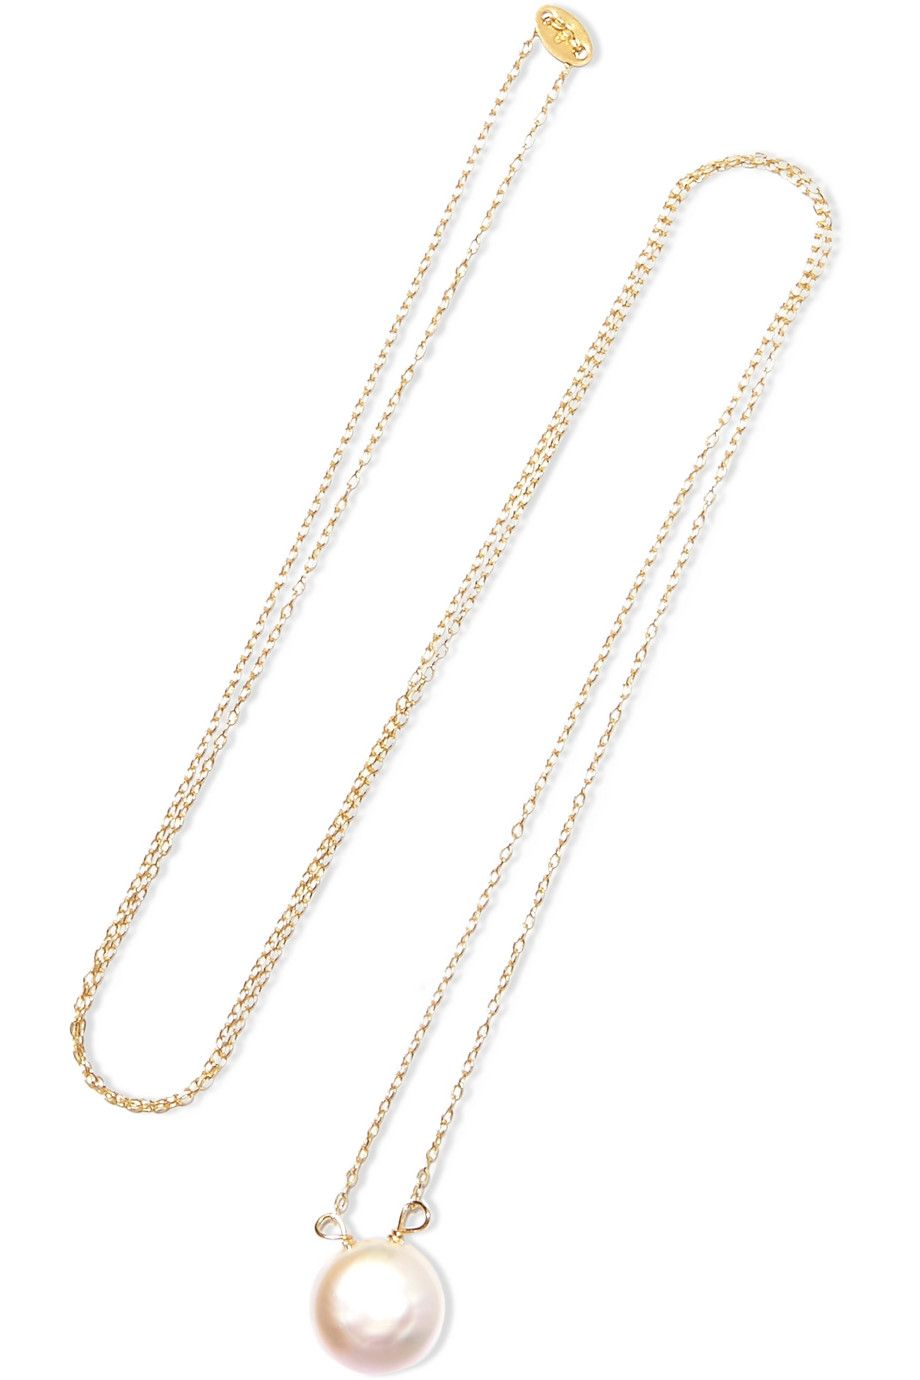 Magda Butrym pearl and gold necklace - White 4qUlcoFd